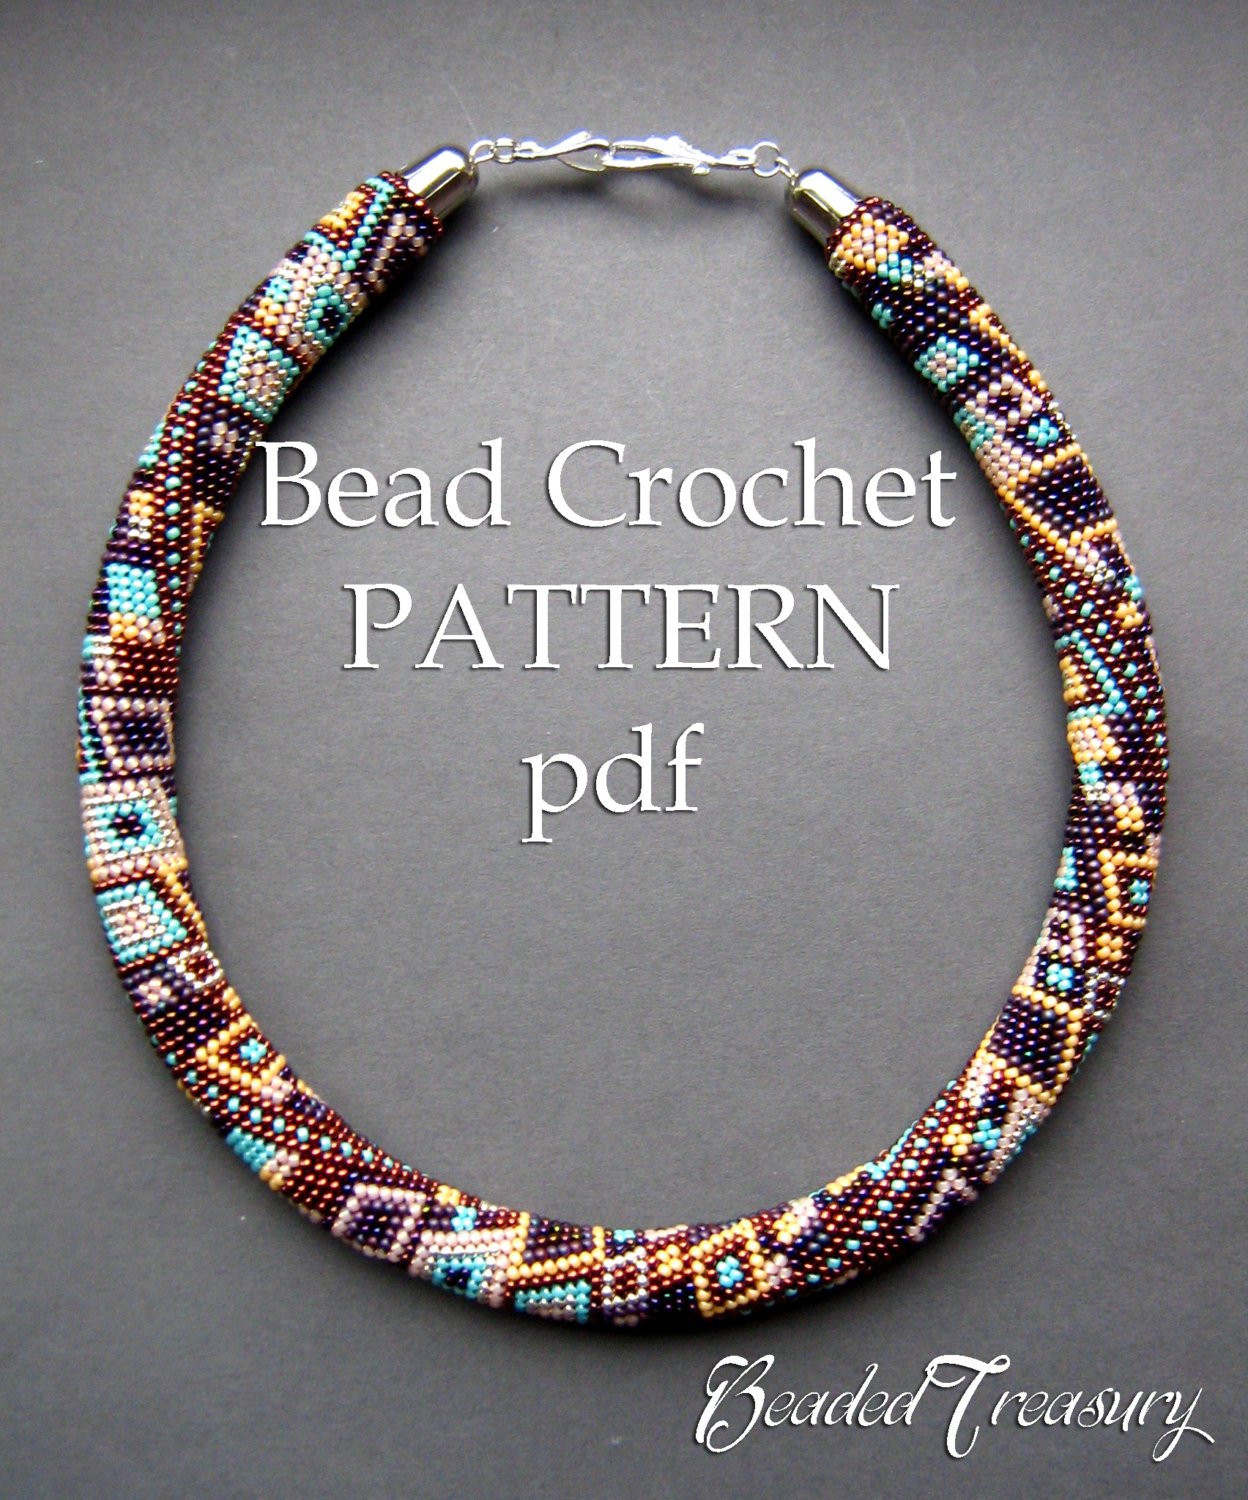 Crochet Beaded Necklace Best Of Pattern for Bead Crochet Necklace Skyscraper Of Contemporary 43 Images Crochet Beaded Necklace